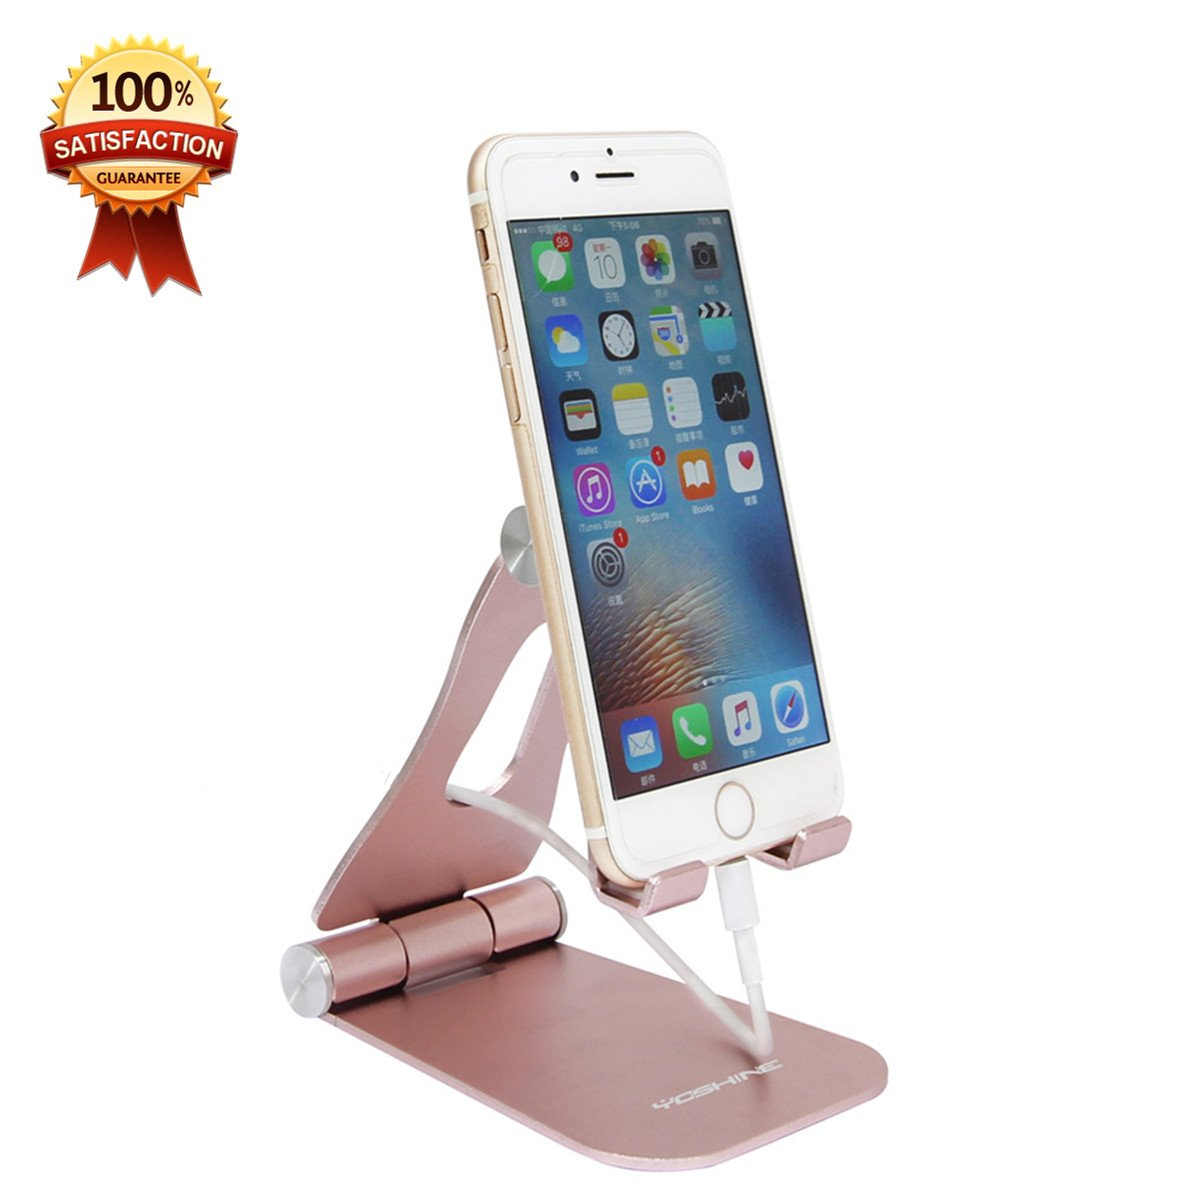 YOSHINE Adjustable Cell Phone Stand, iPhone Stand Solid Aluminum Cell Phone Holder Cradle Dock For Switch, iPhone 8 X 7 6 6s Plus 5 5s 5c charging, Accessories Desk, all Android Smartphone - Pink